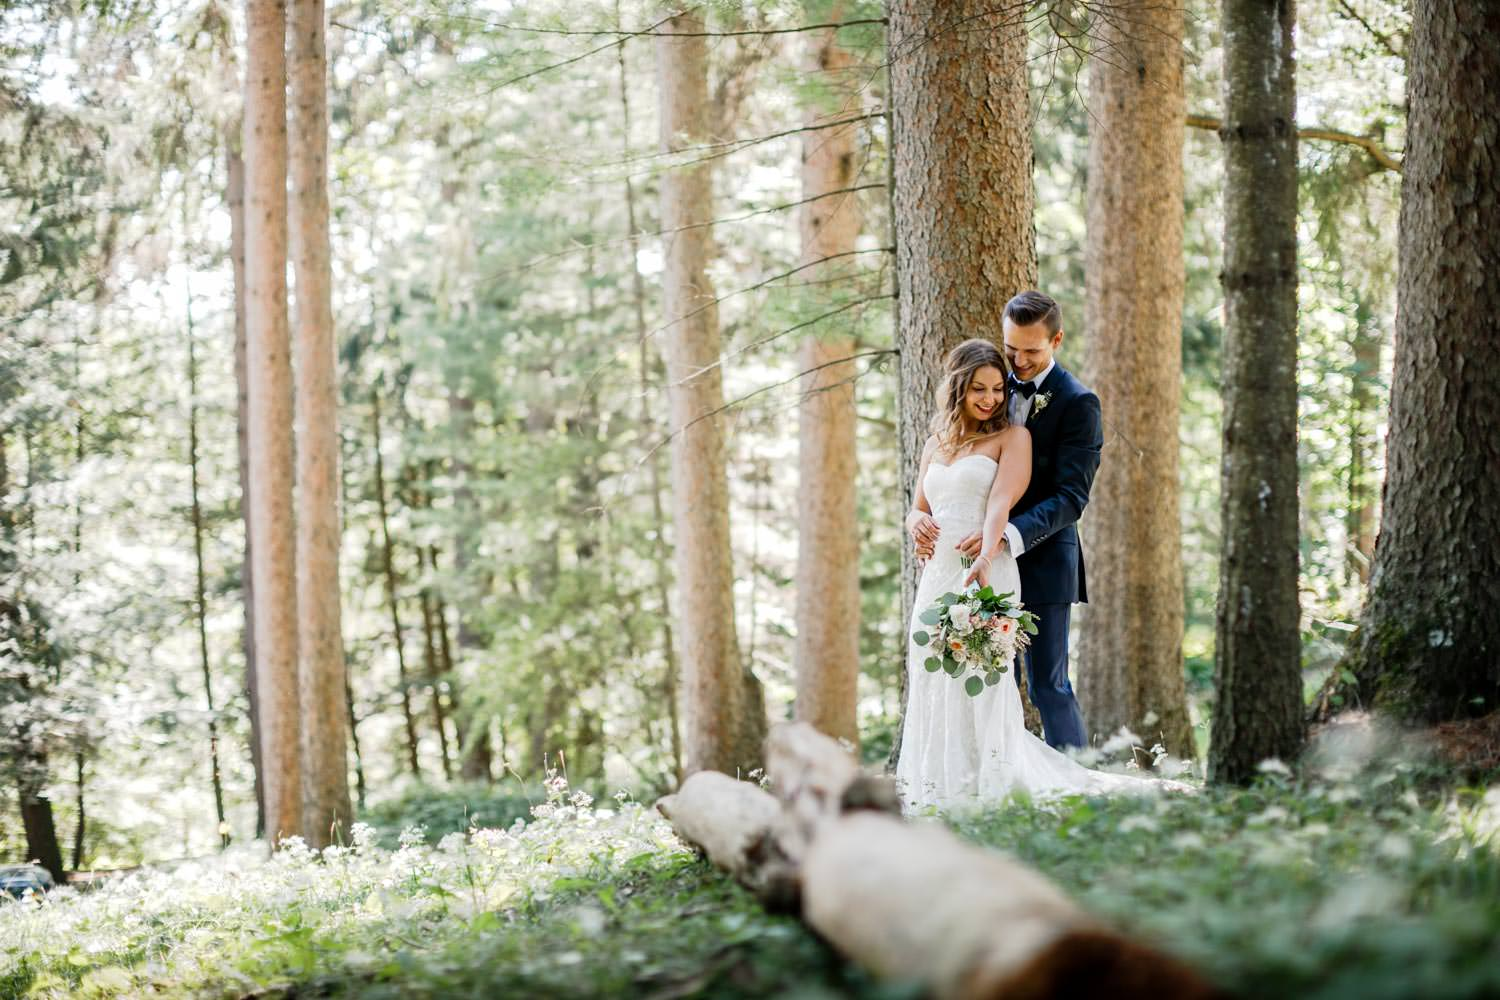 bride and groom embrace next to log in the woodstock inn woods